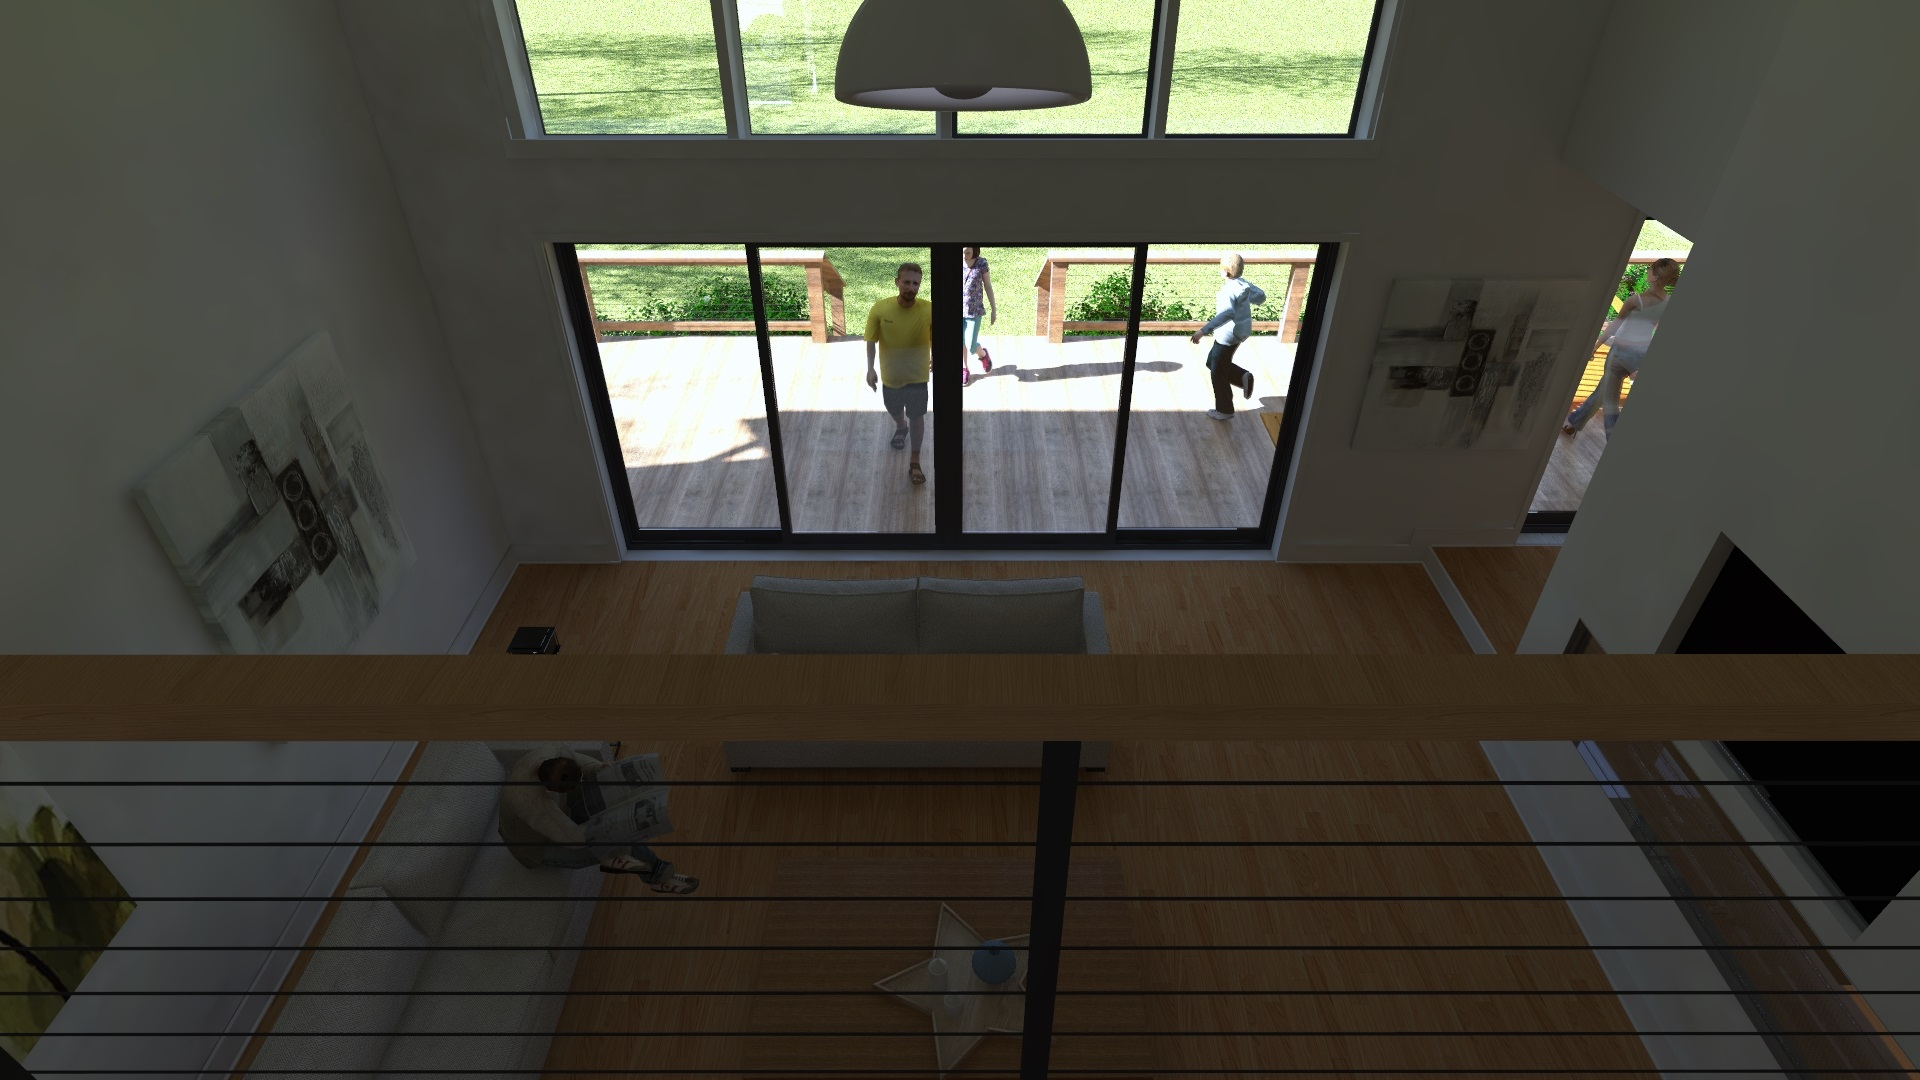 3D Rendering of a New Home Design for a Home on Joelton Road